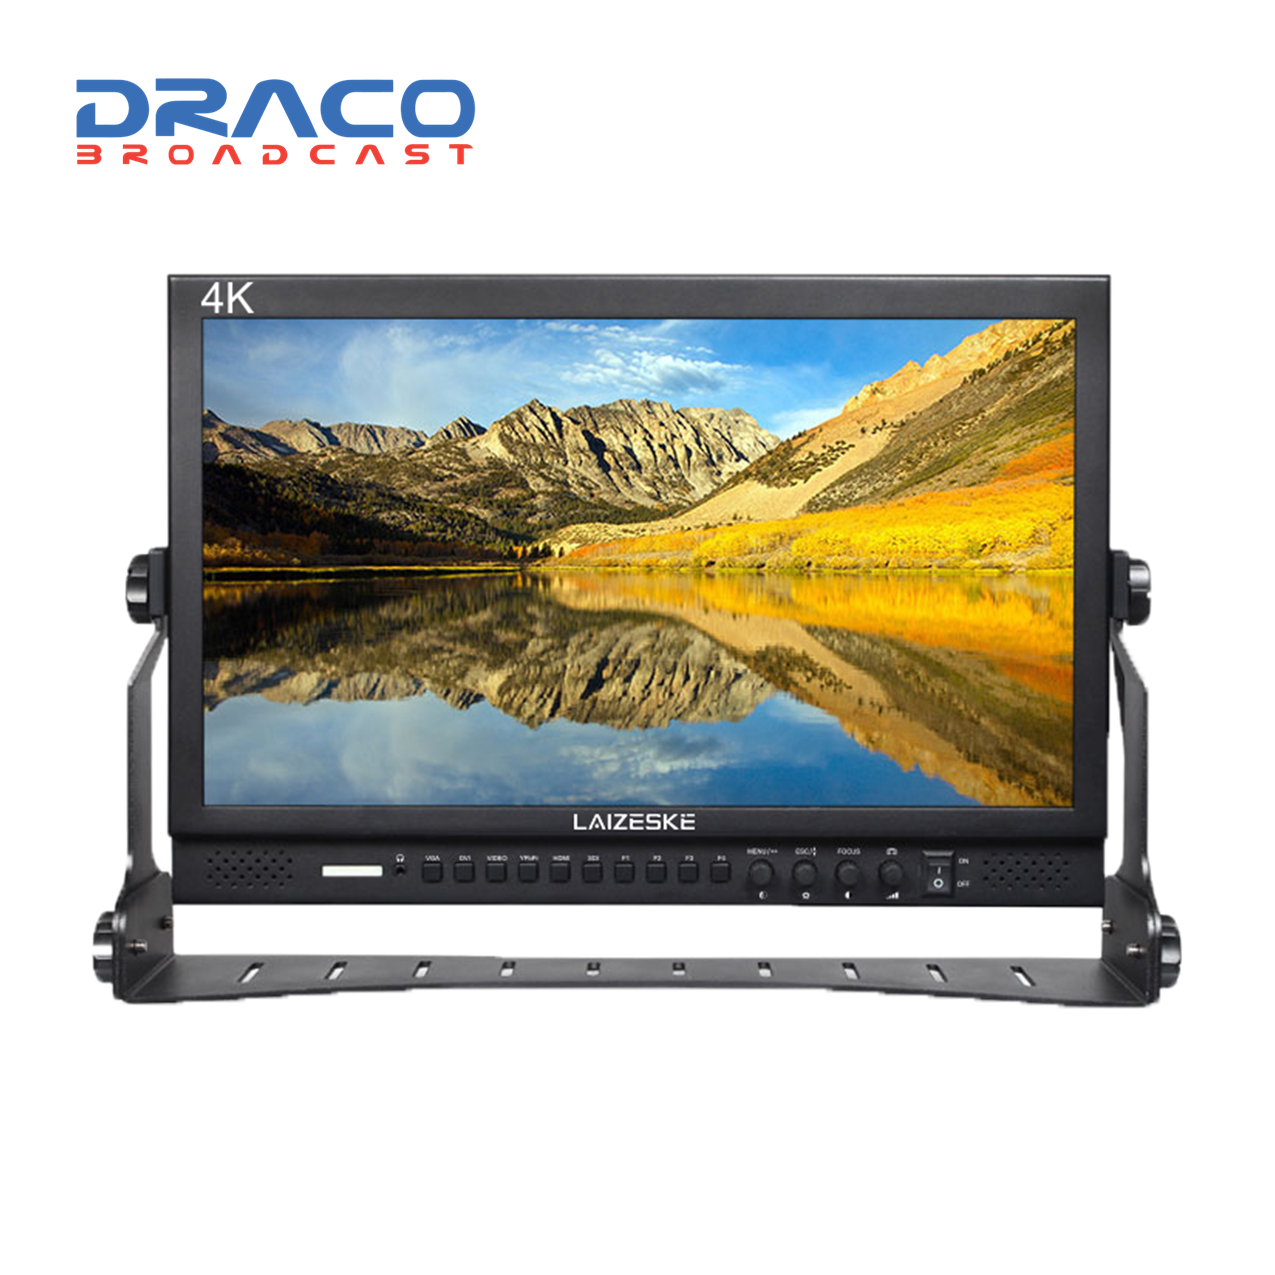 Laizeske DR173S 17.3″ Full HD LED-Backlit Multiformat Pro Broadcast LCD Monitor Monitors Draco Broadcast